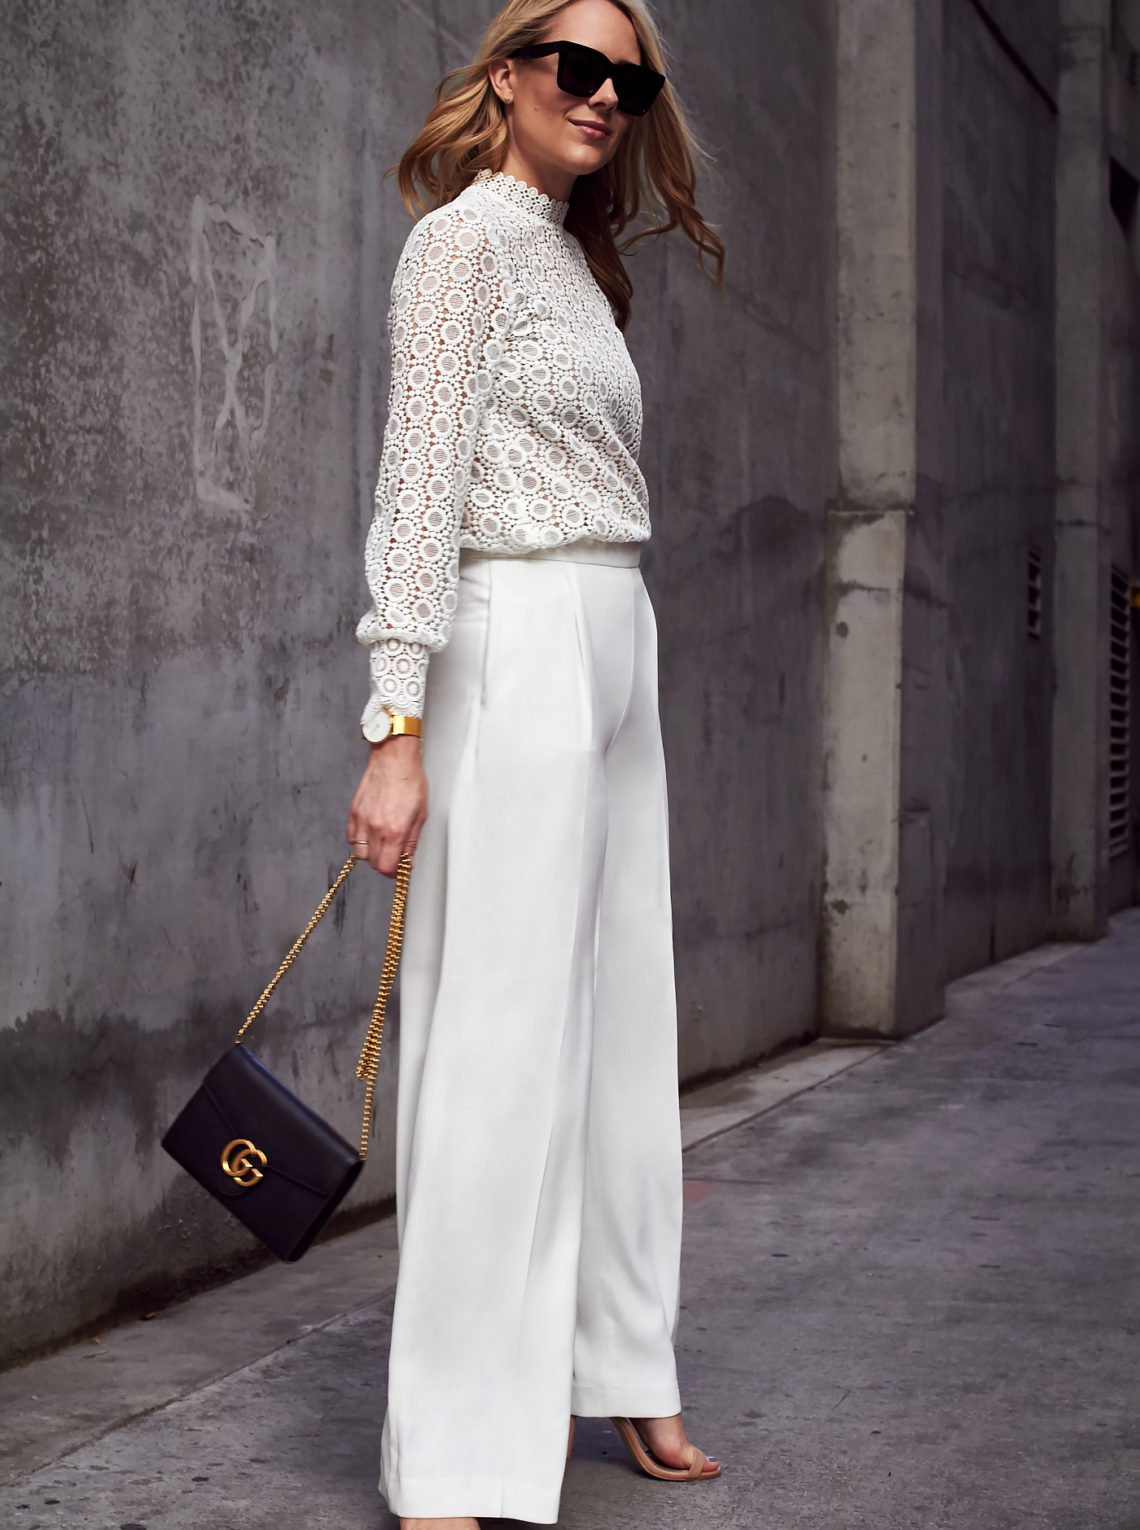 Fall/Winter Outfit, Head-to-toe-white, H&M Long Sleeve White Lace Blouse, White Wide Leg Pants, Gucci Marmont Handbag, Black Celine Sunglasses